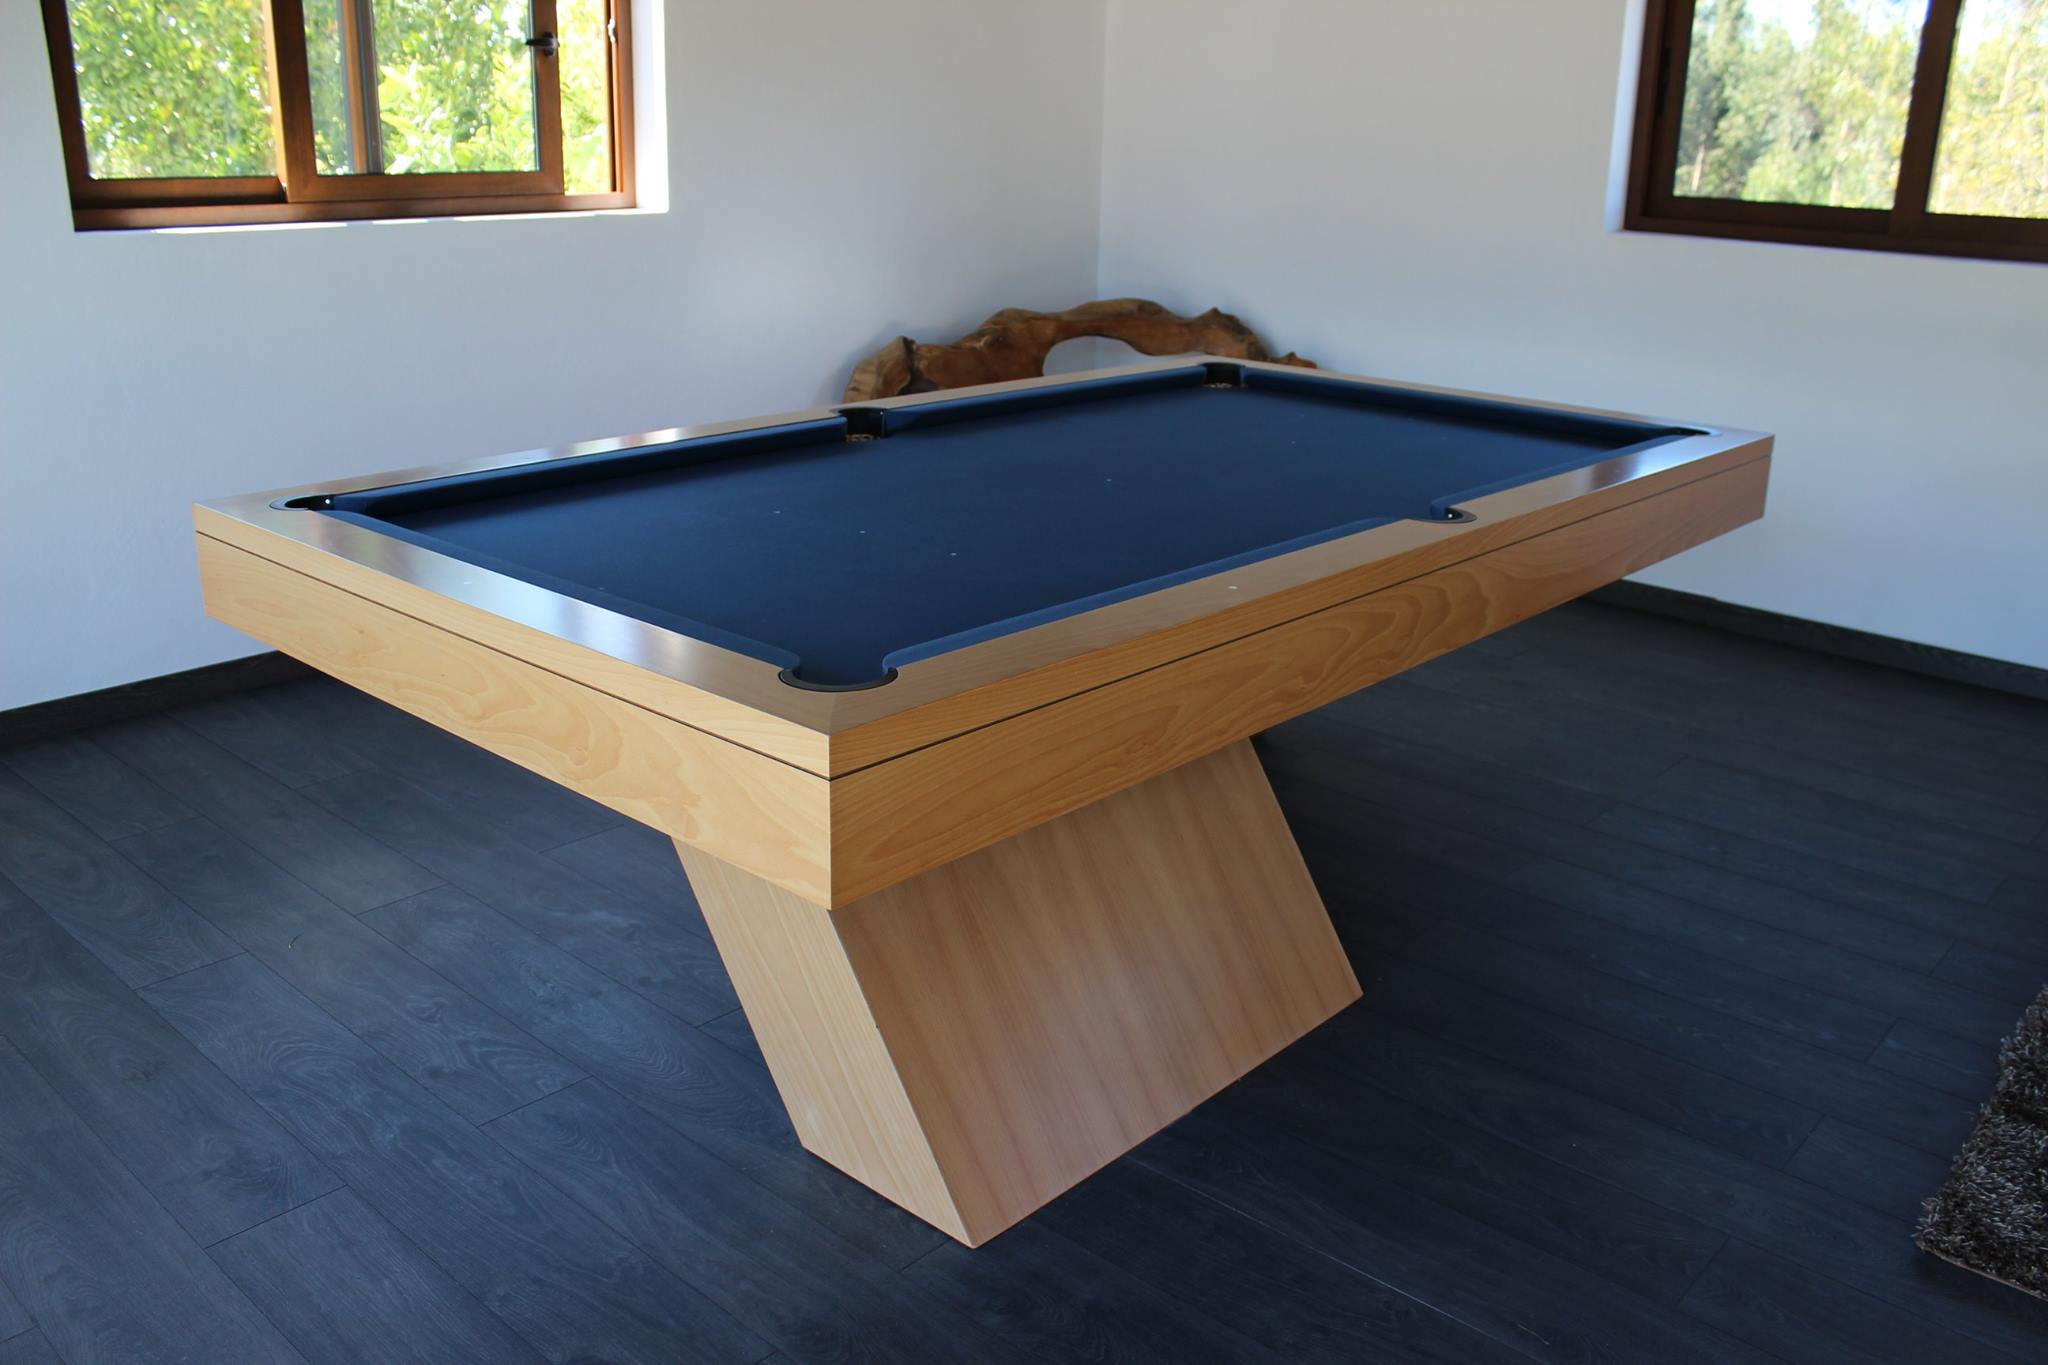 The Houdini Slate Bed Pool Table | Liberty Games